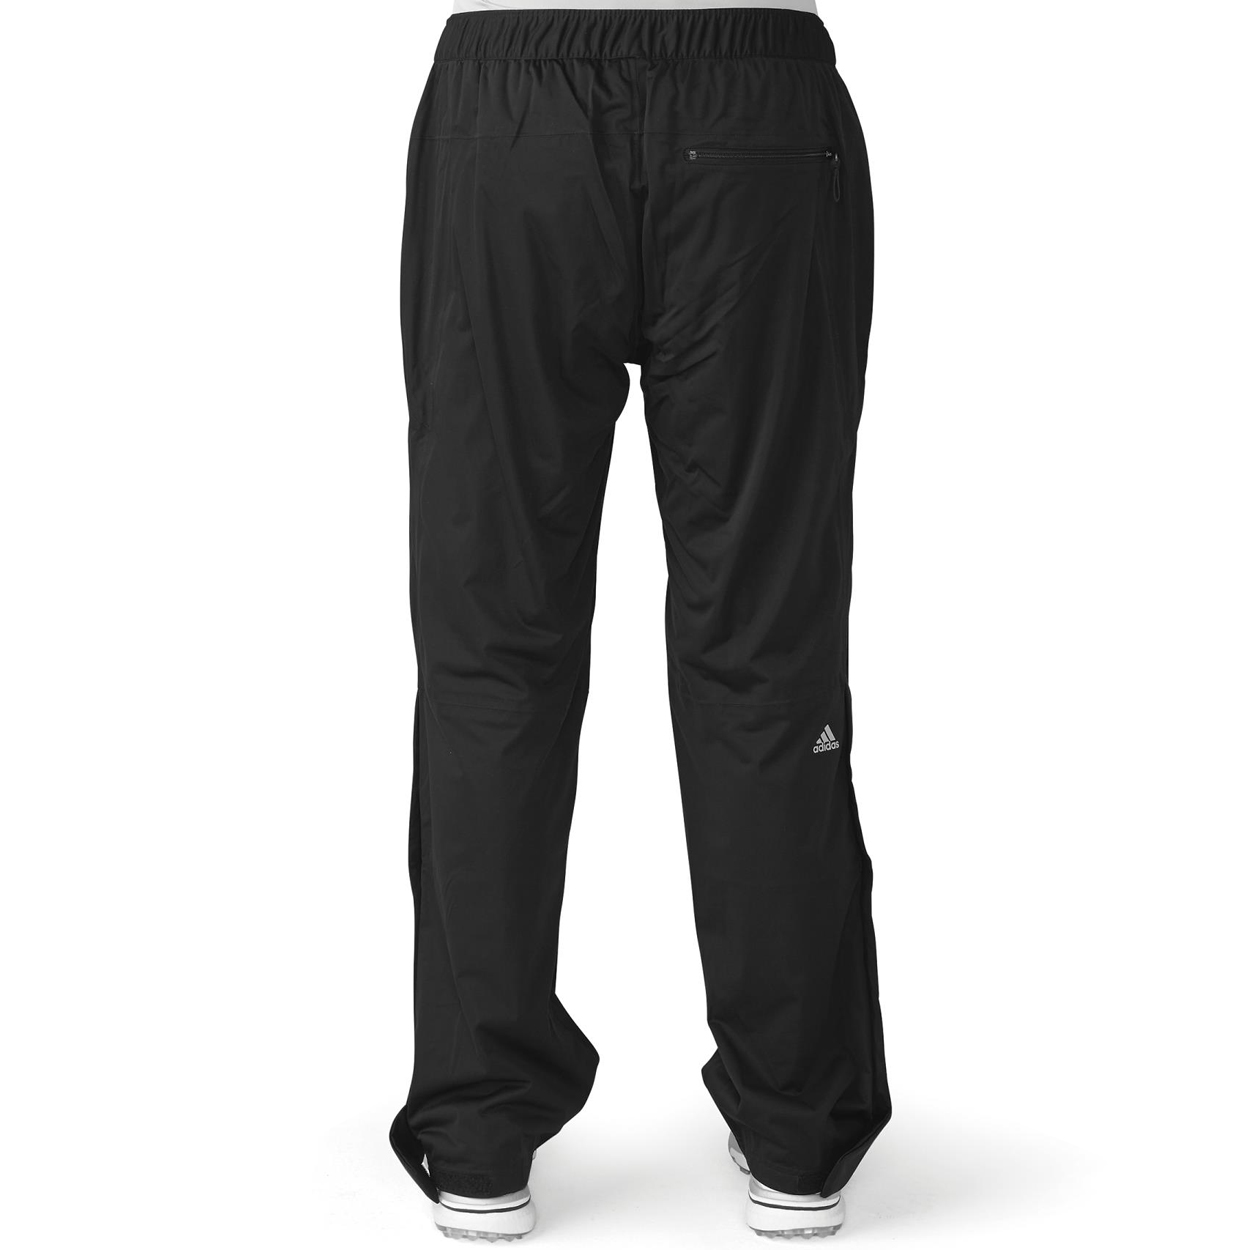 Adidas golf men 39 s climaproof advance rain pant ebay for Adidas golf rain shirt